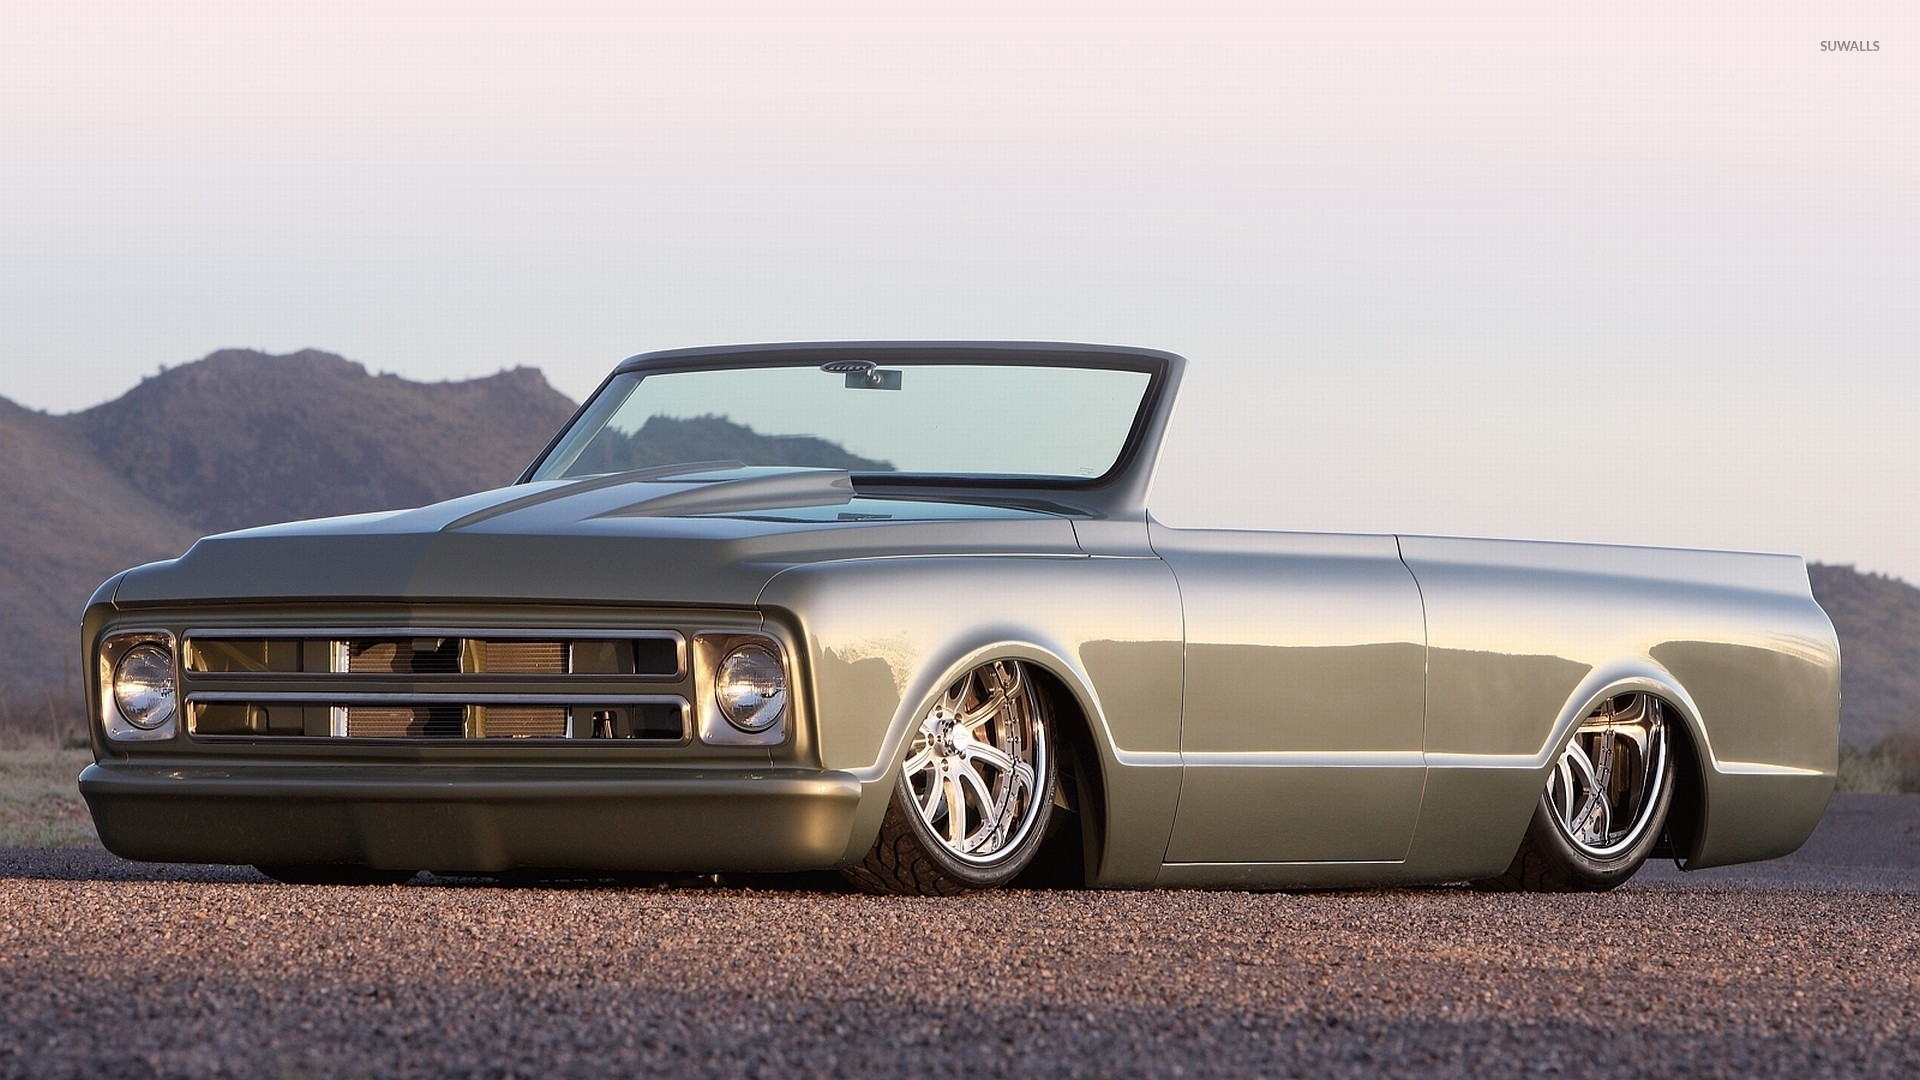 1920x1080 Lowrider Cars Wallpapers screenshot Source · Lowrider Car Wallpaper